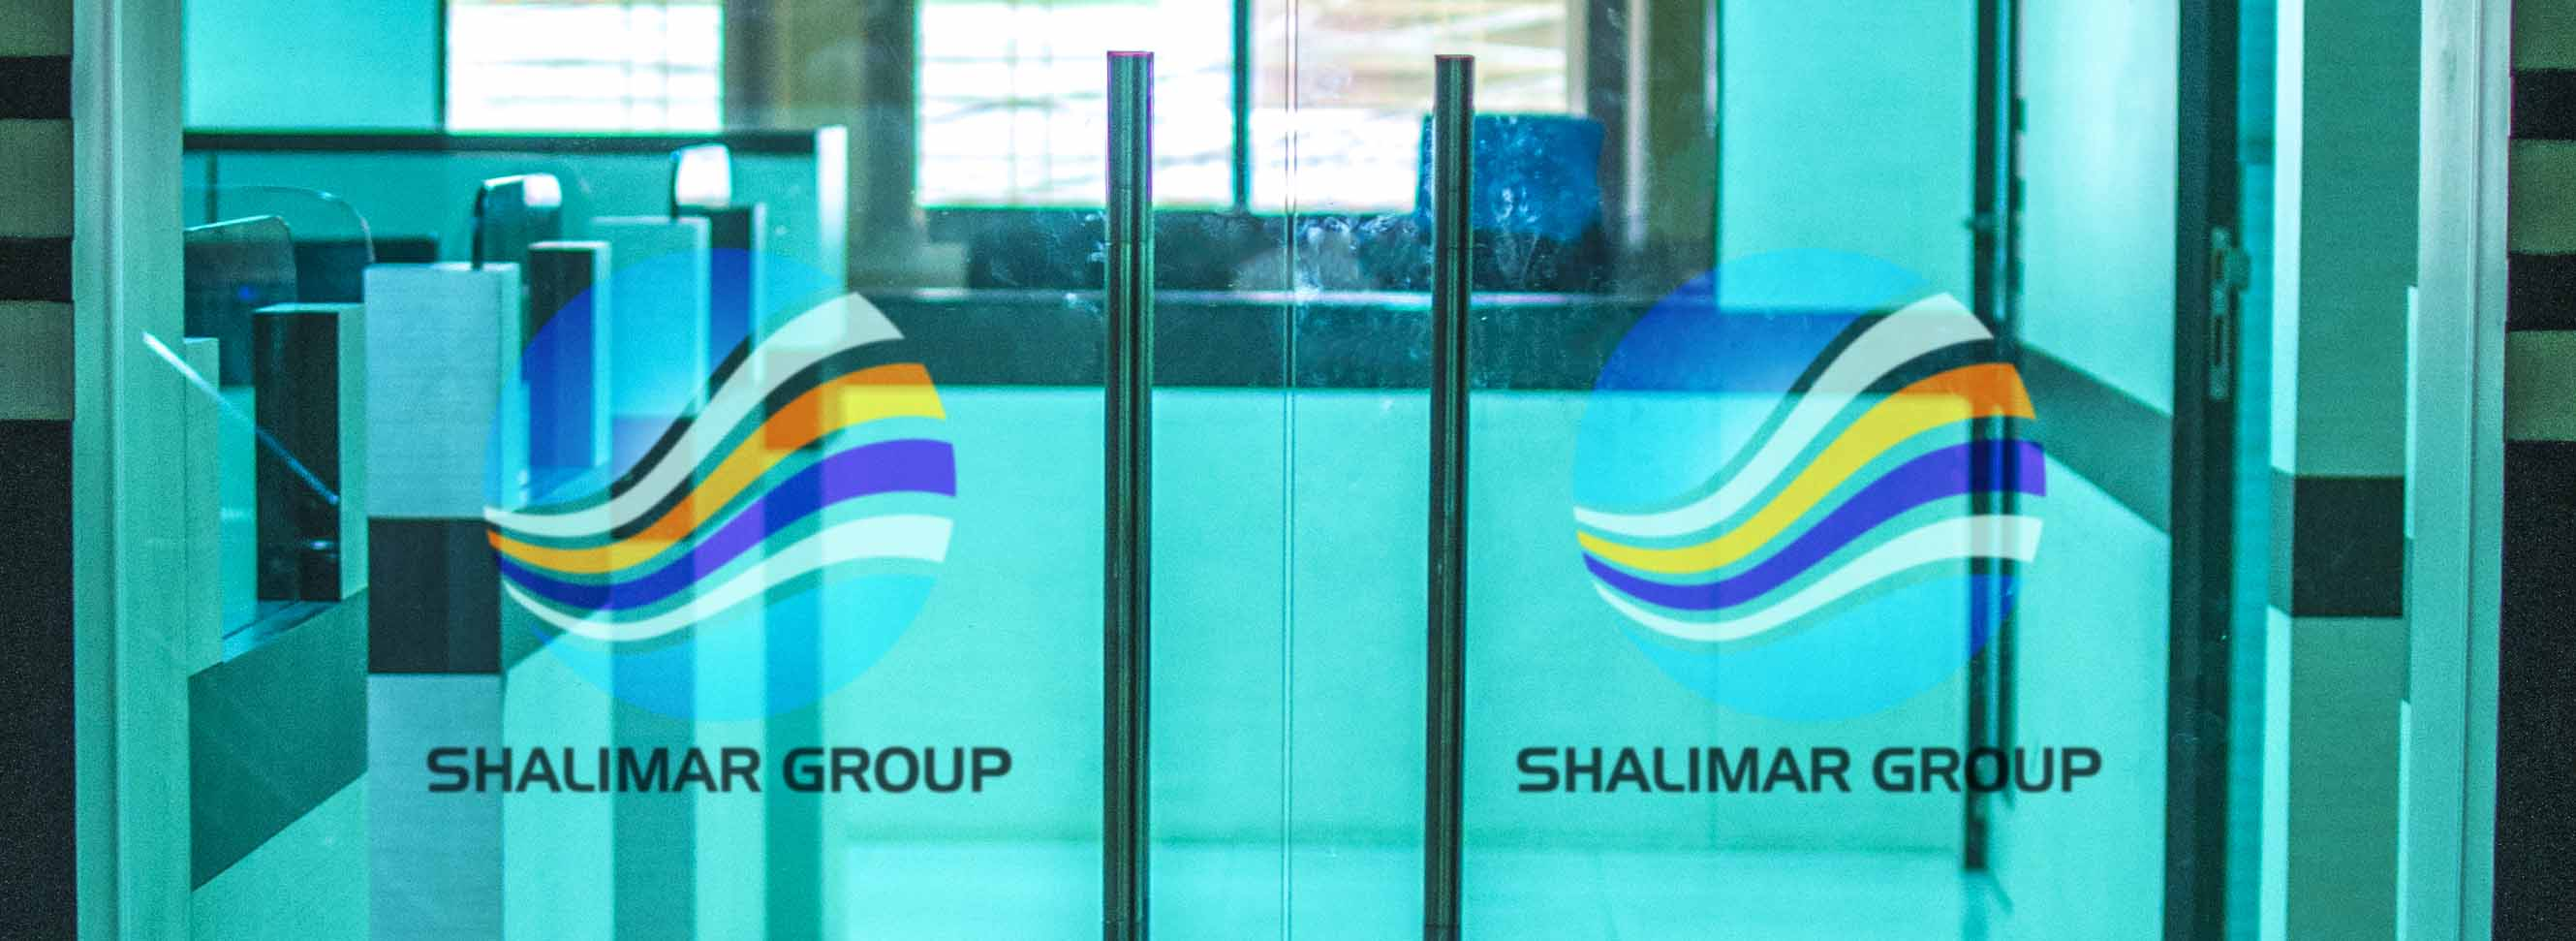 Shalimar Group Contact Header Image